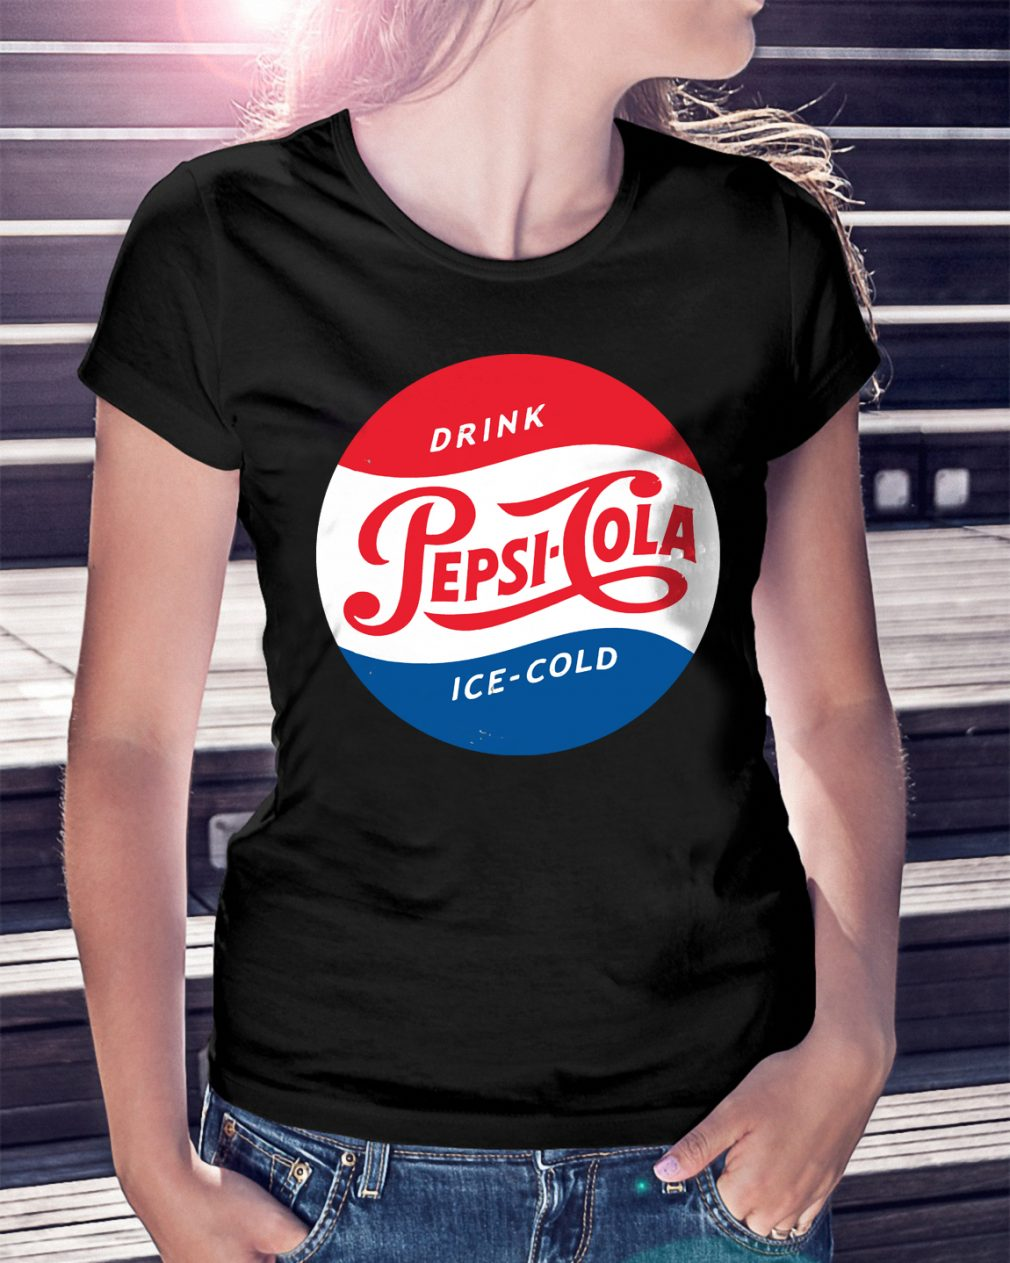 Drink Pepsi Cola Ice Cold Shirt